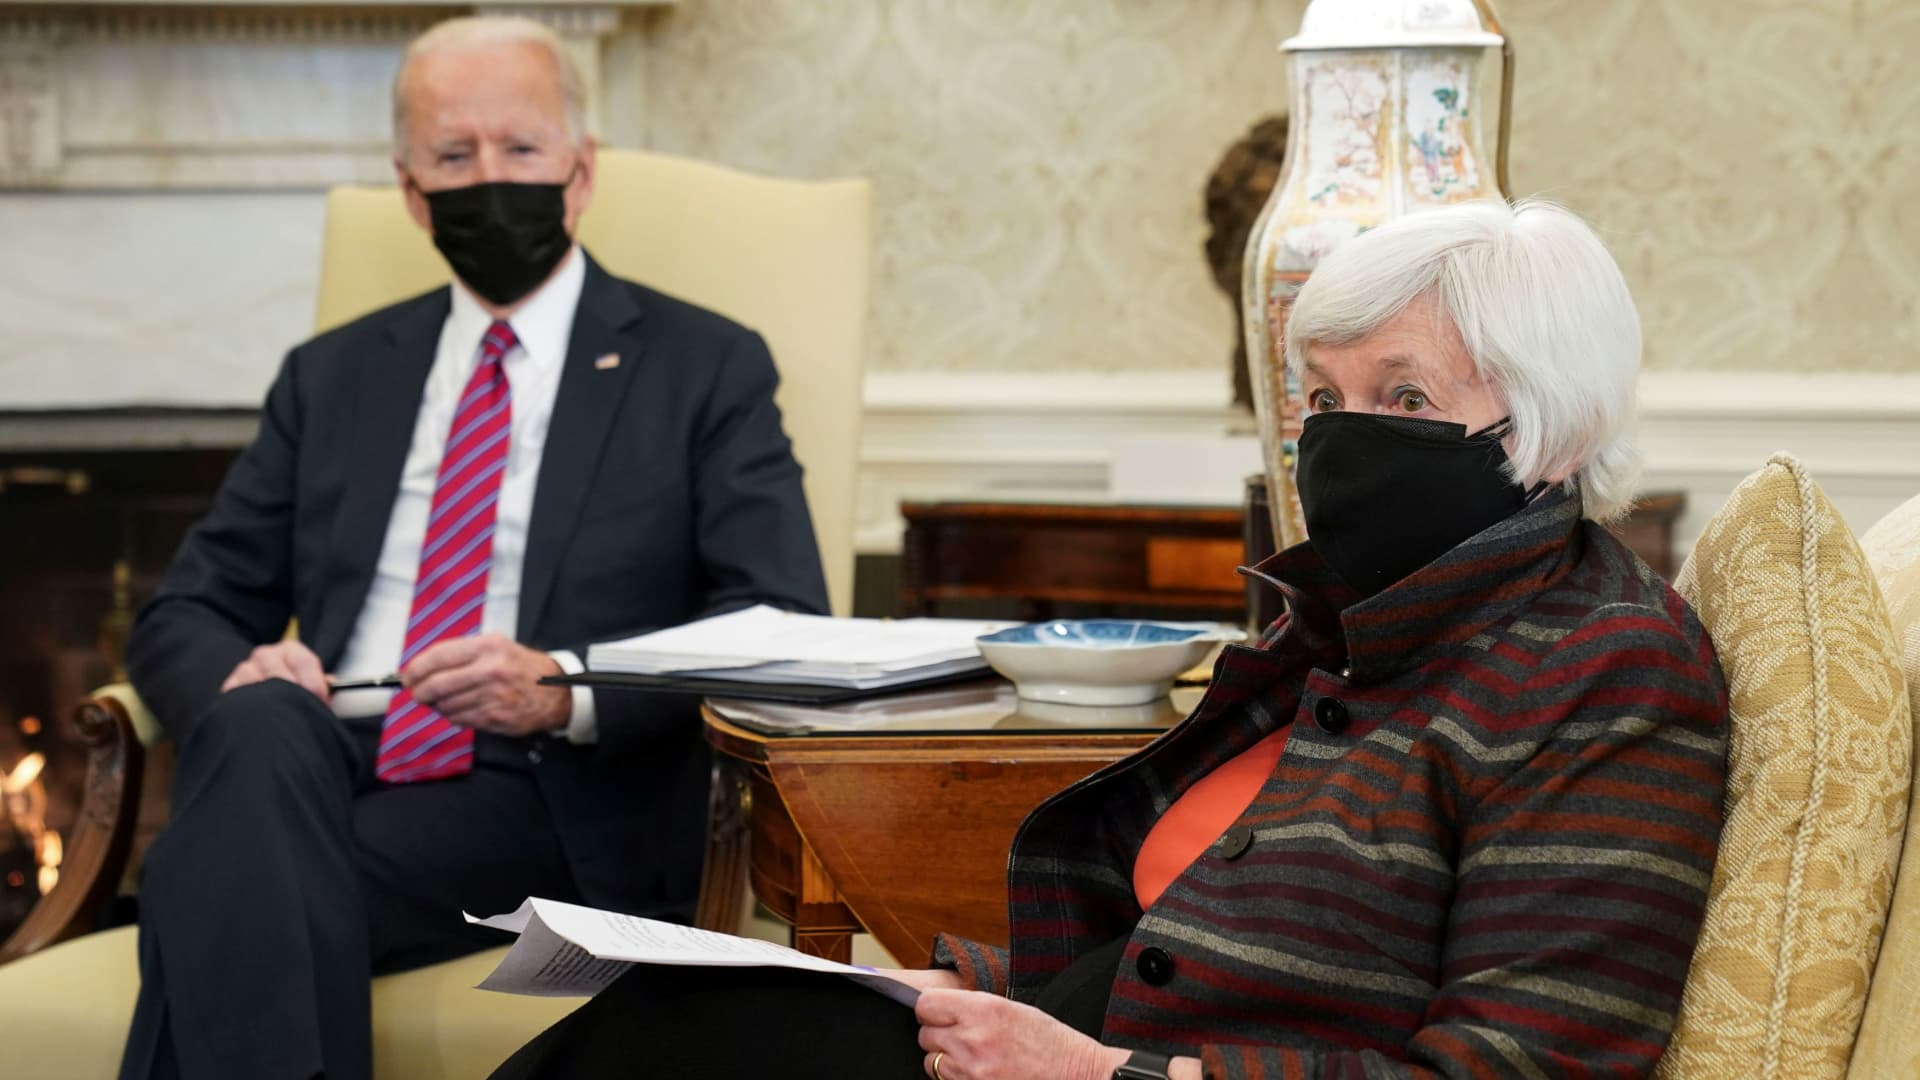 U.S. President Joe Biden receives an economic briefing with Treasury Secretary Janet Yellen in the Oval Office at the White House in Washington, January 29, 2021.